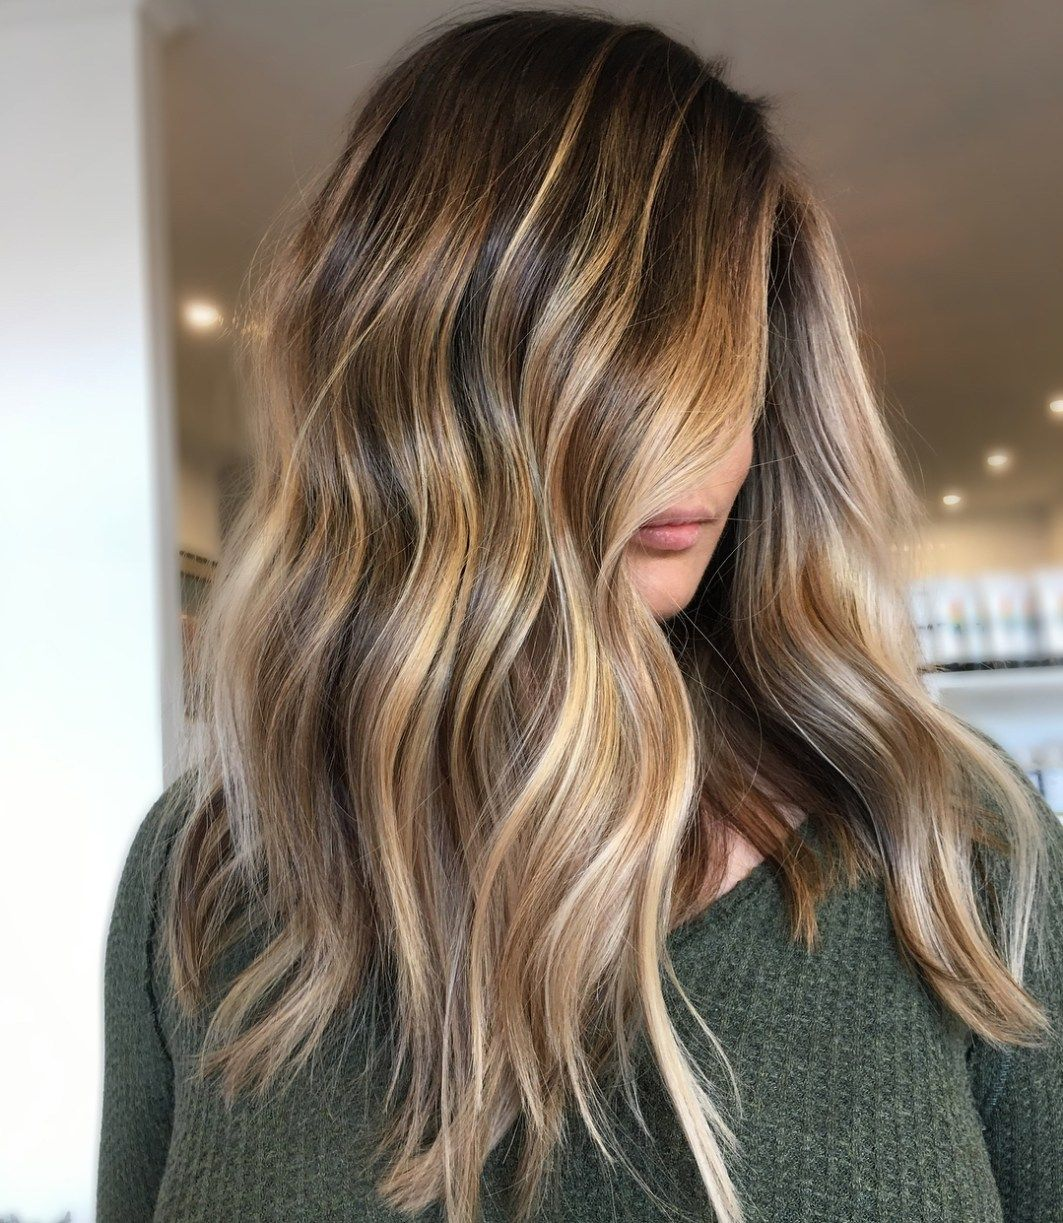 Caramel and Strawberry Blonde Highlights